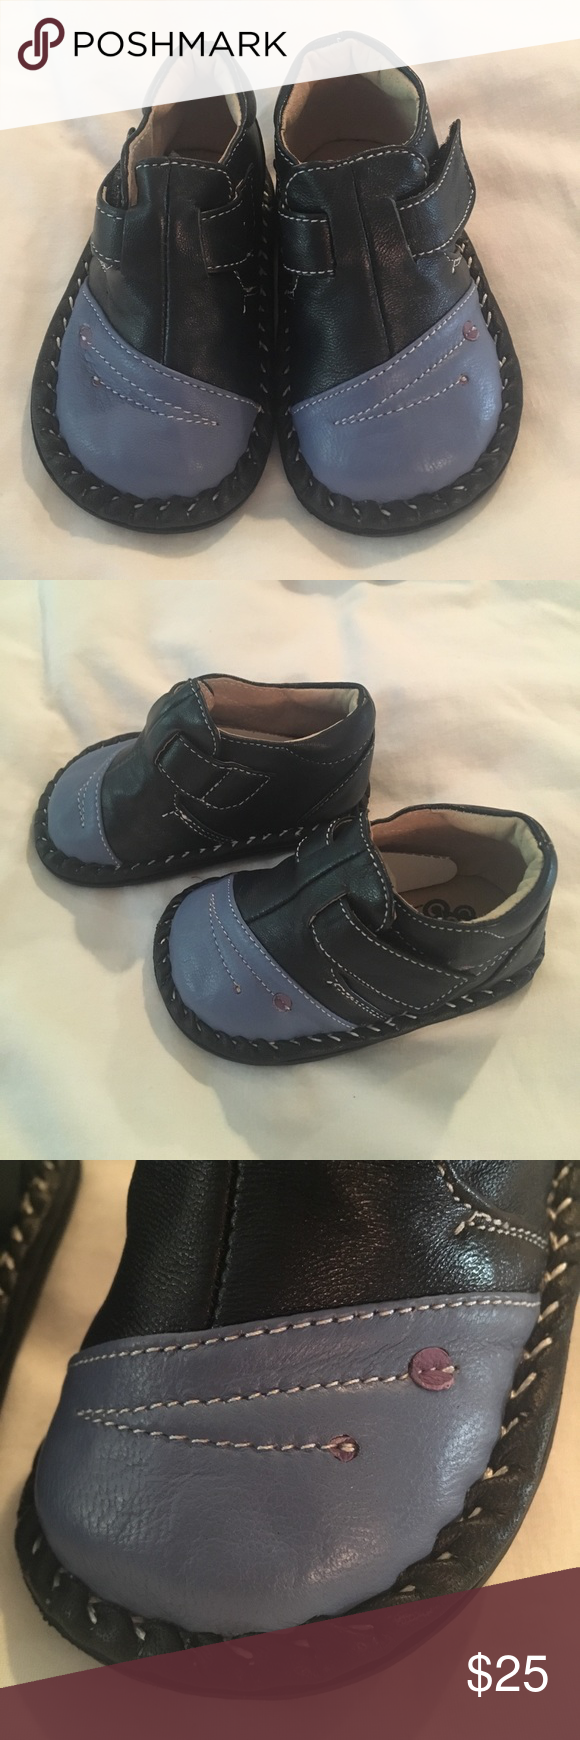 See Kai Run shoes Brand new, never worn shoes. Velcro closure. Fun, embroidered detail. See Kai Run Shoes Baby & Walker